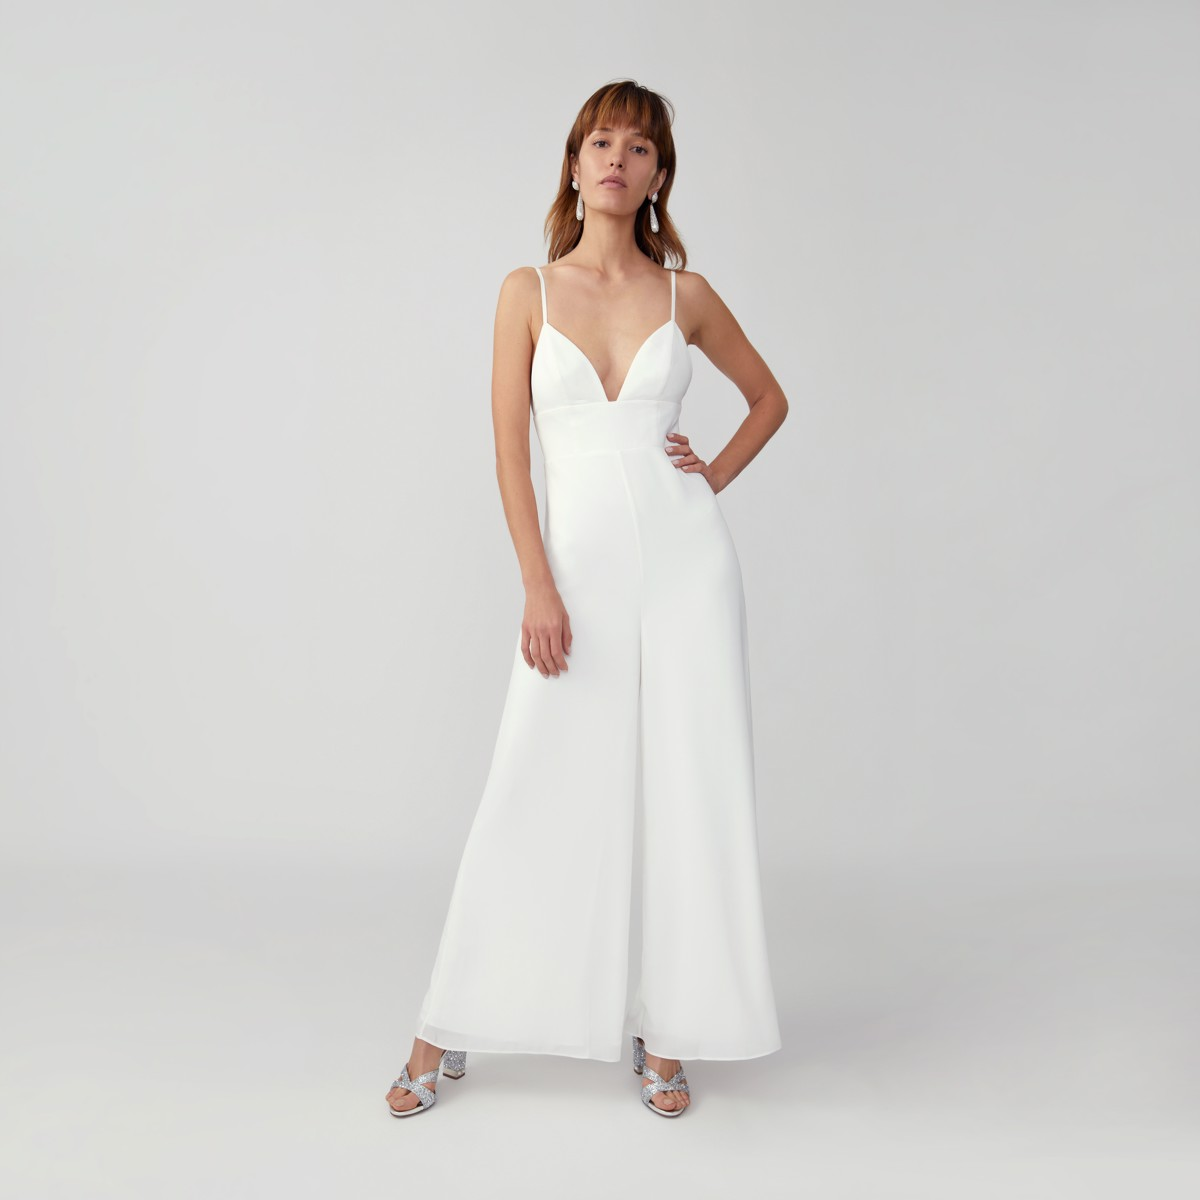 Courthouse Wedding Dresses For The 2020 Bride